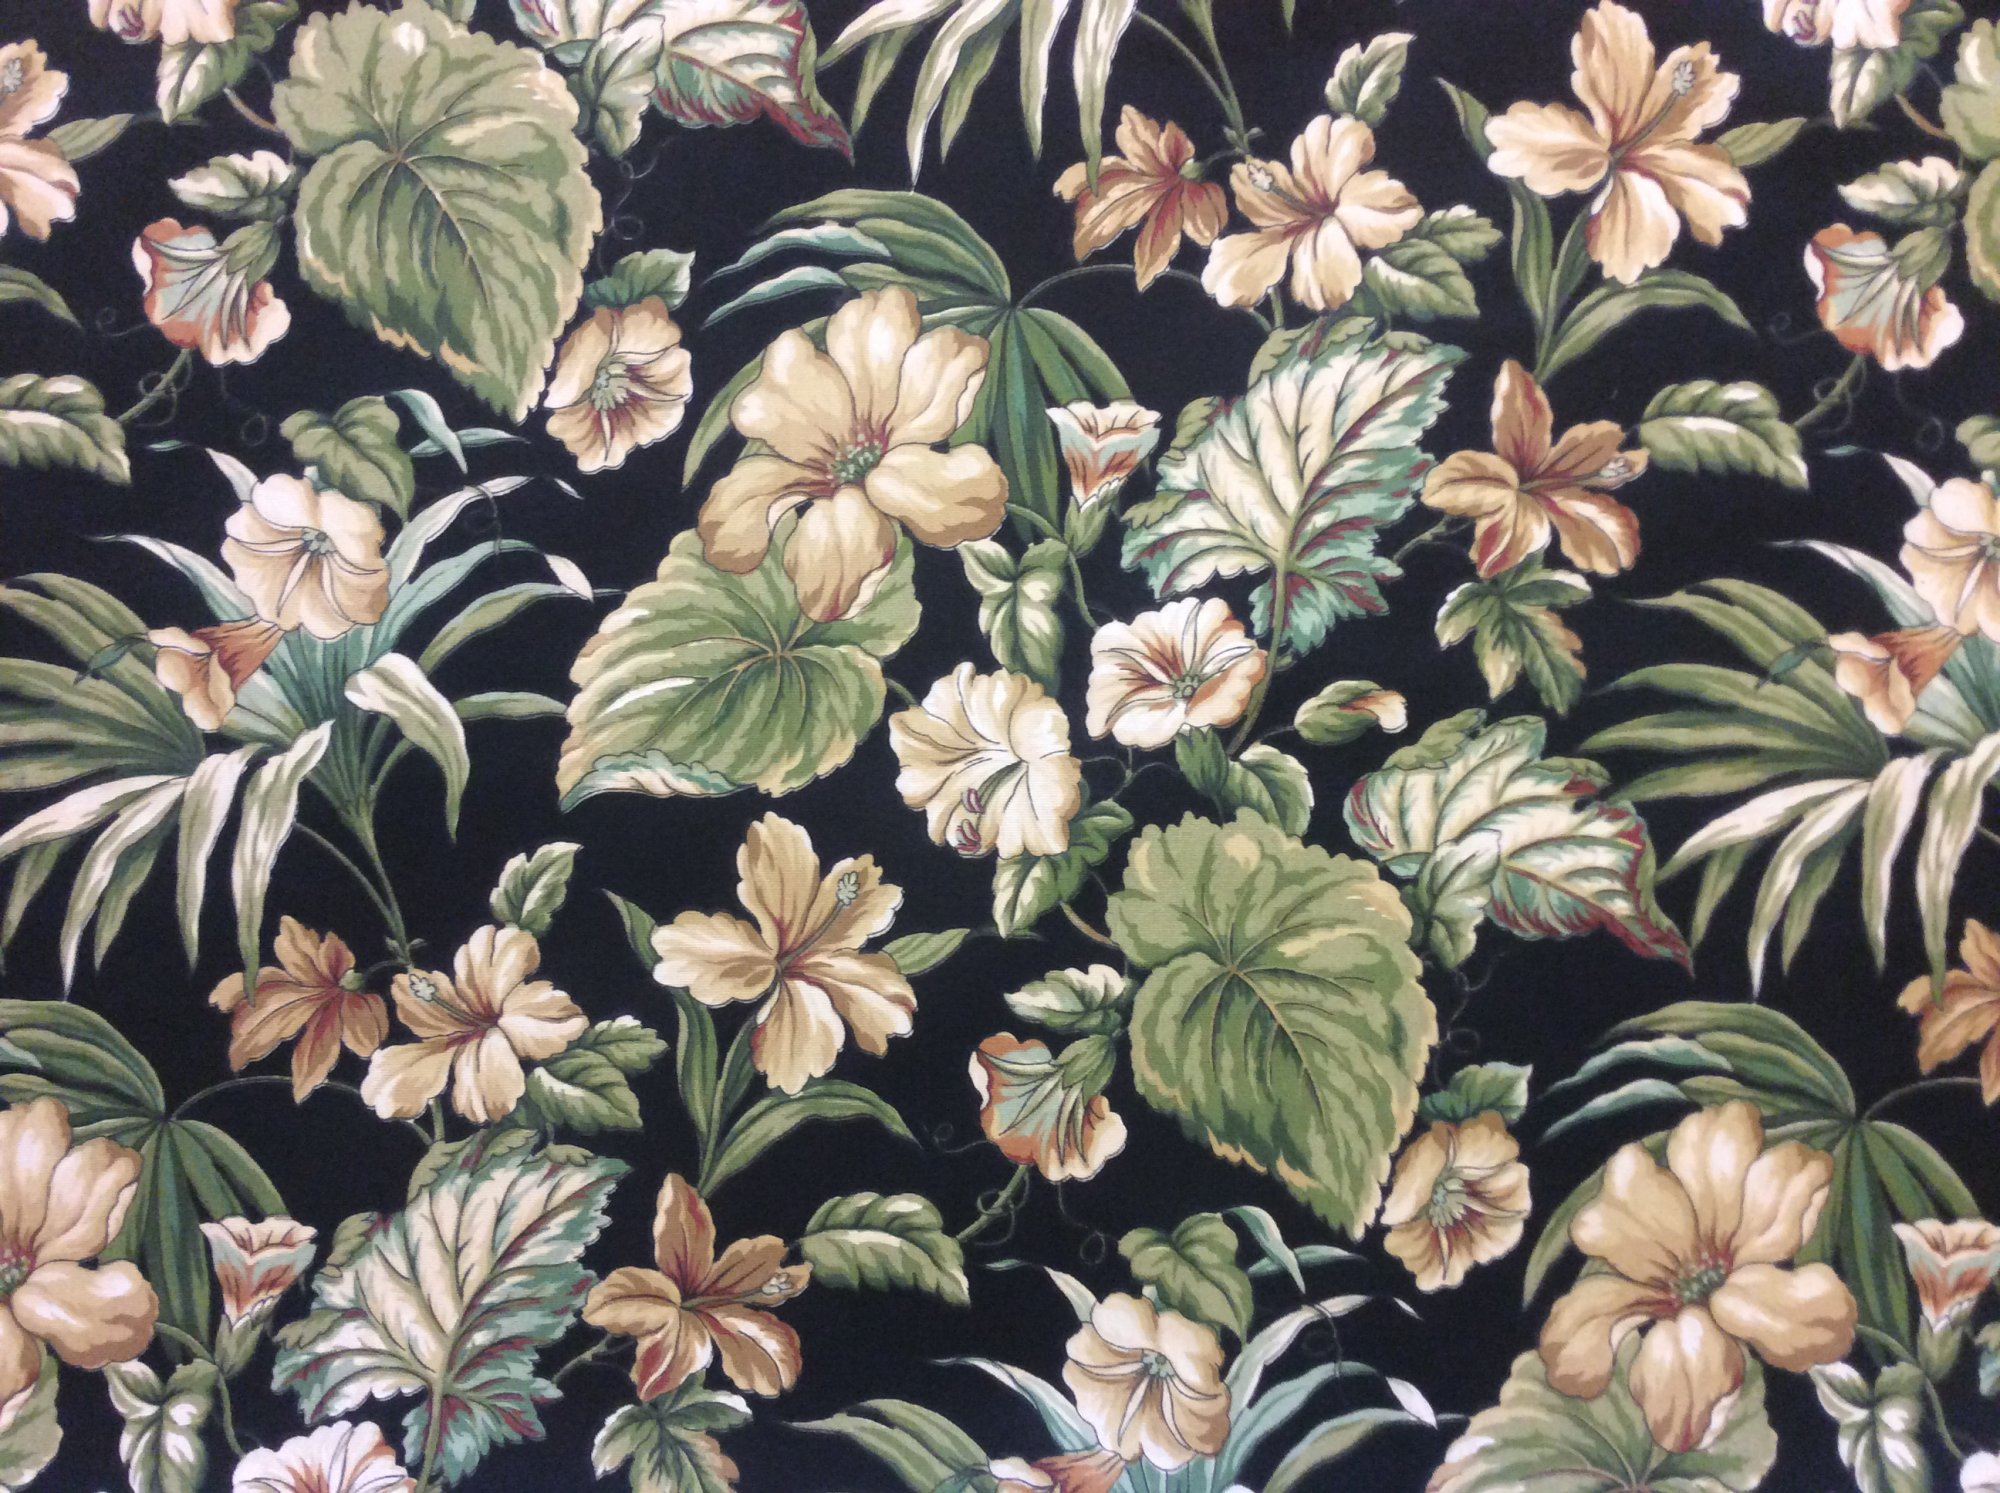 Floral Hibiscus Night Floral Flower Print Soft Famous Maker Acrylic Indoor Outdoor Fabric s403